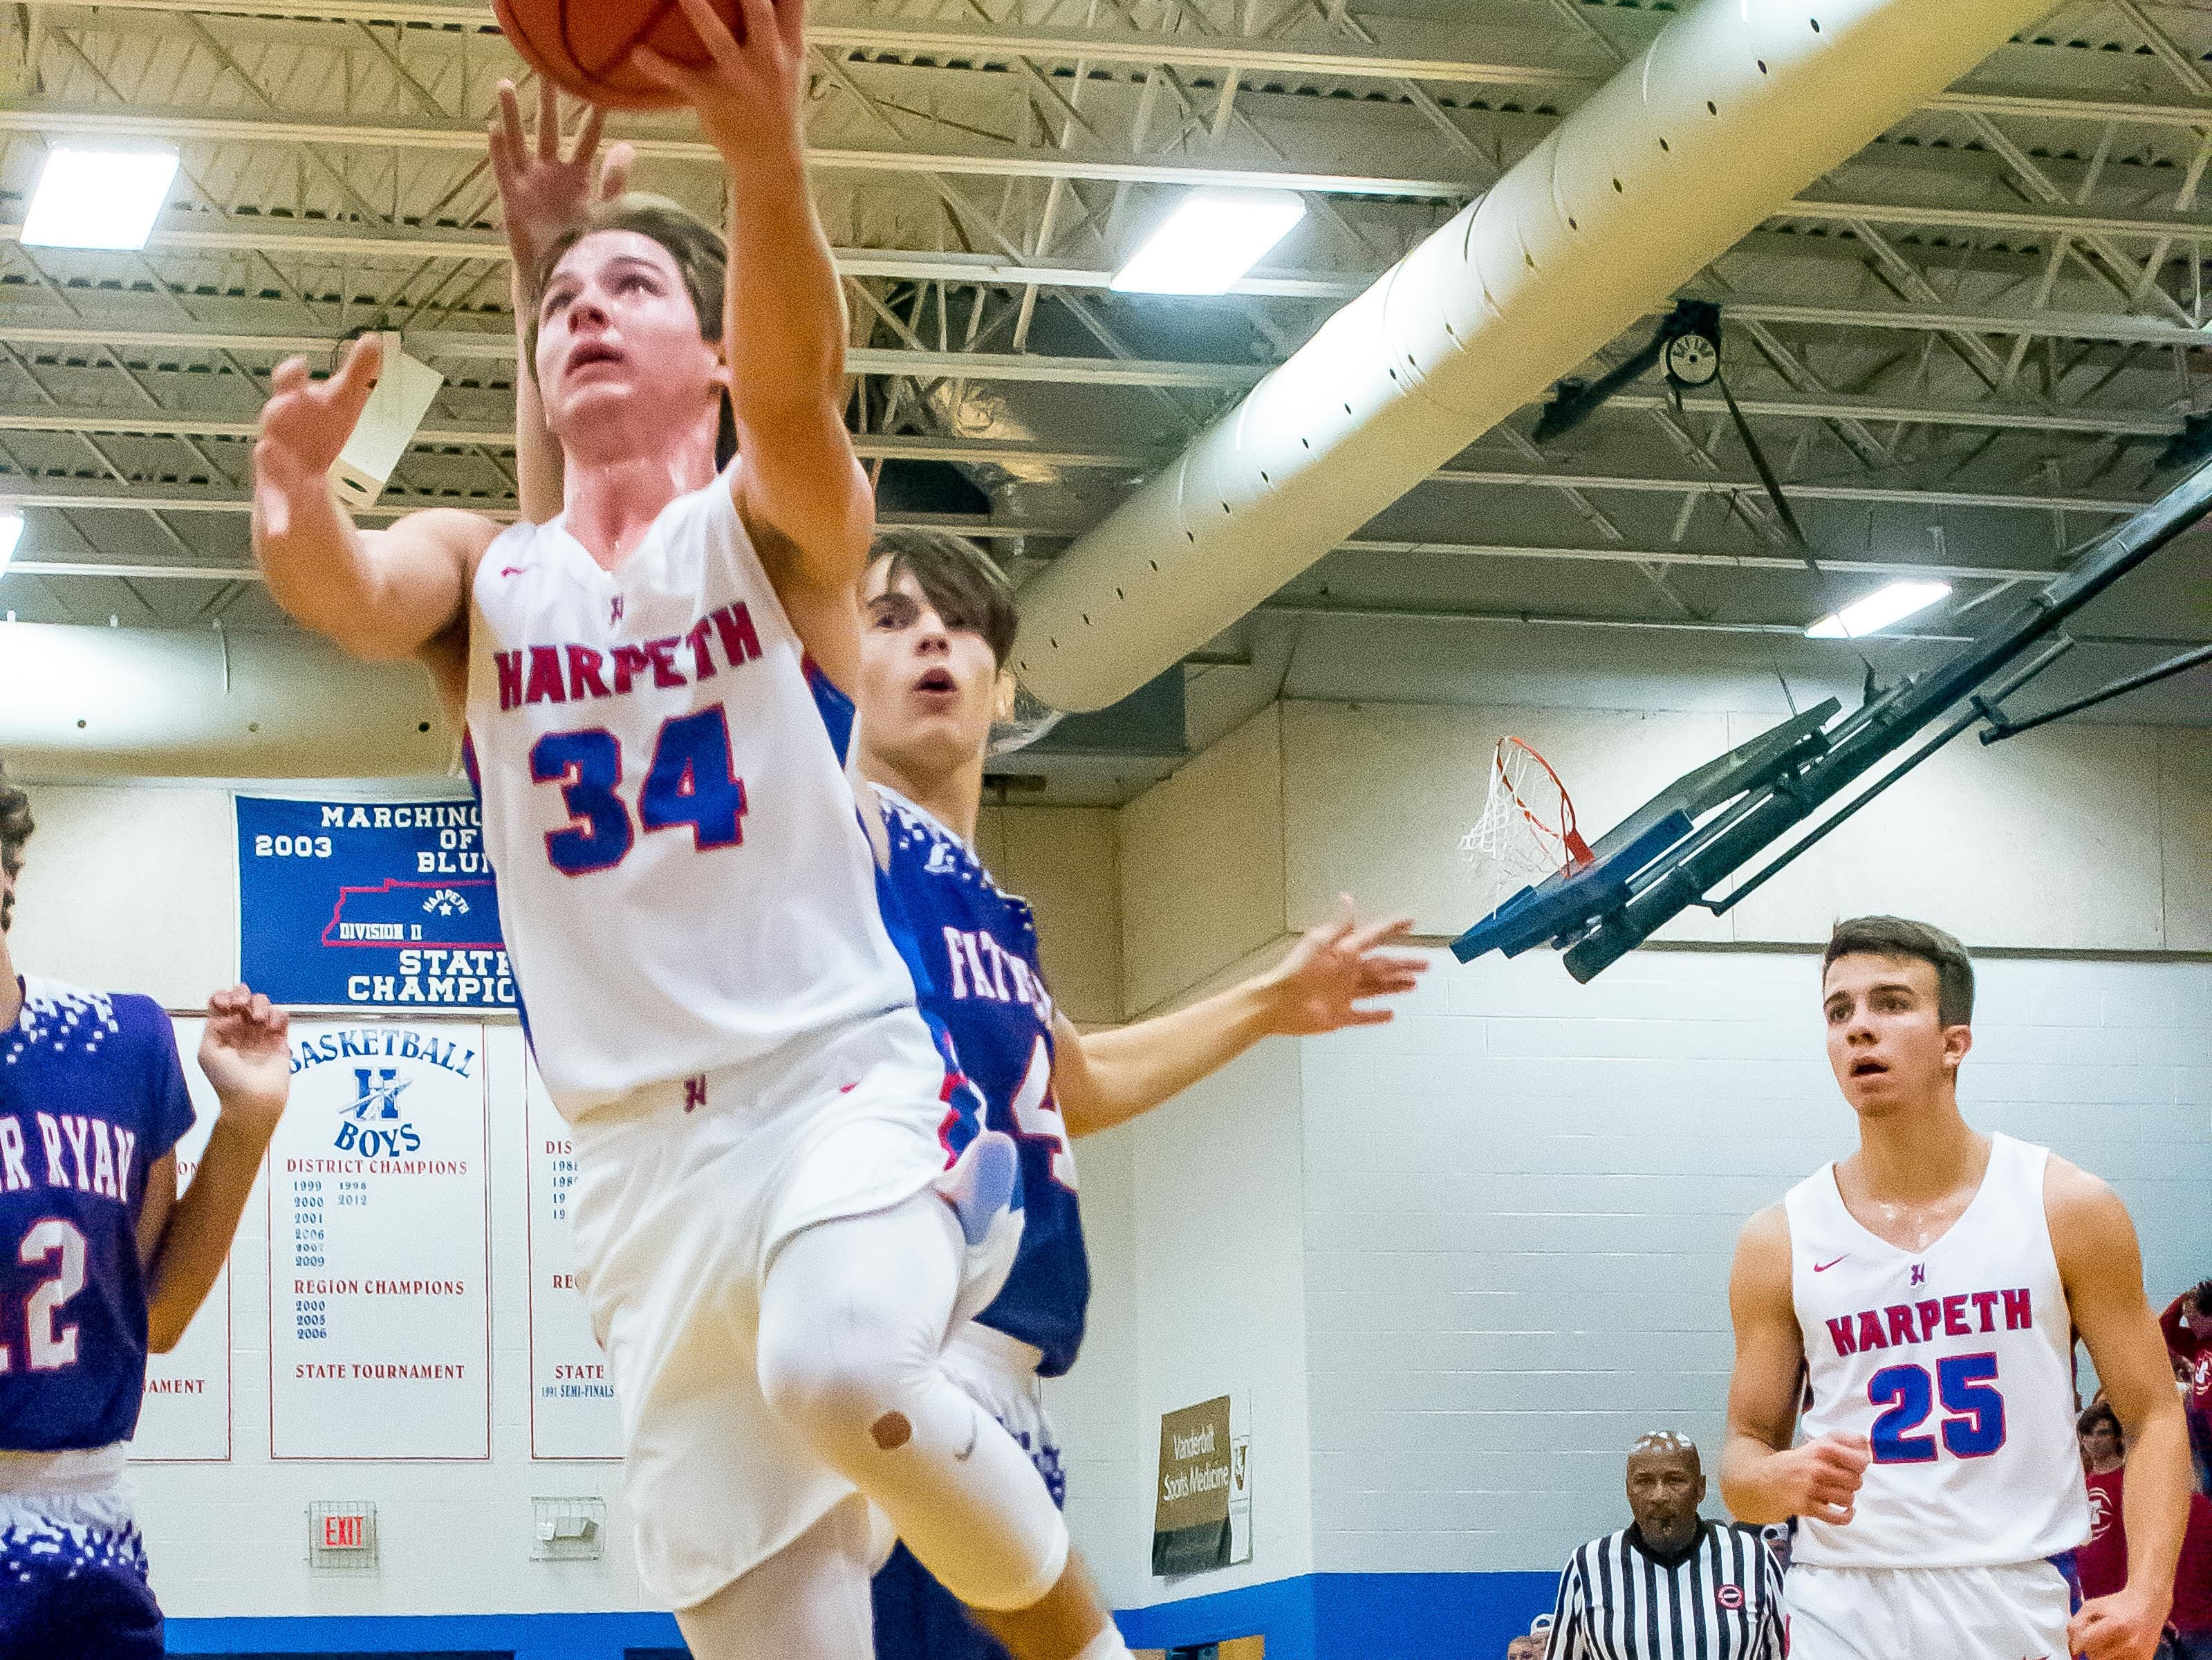 Harpeth's senior Luke Liles scored 12 points to lead the Indians against Father Ryan.